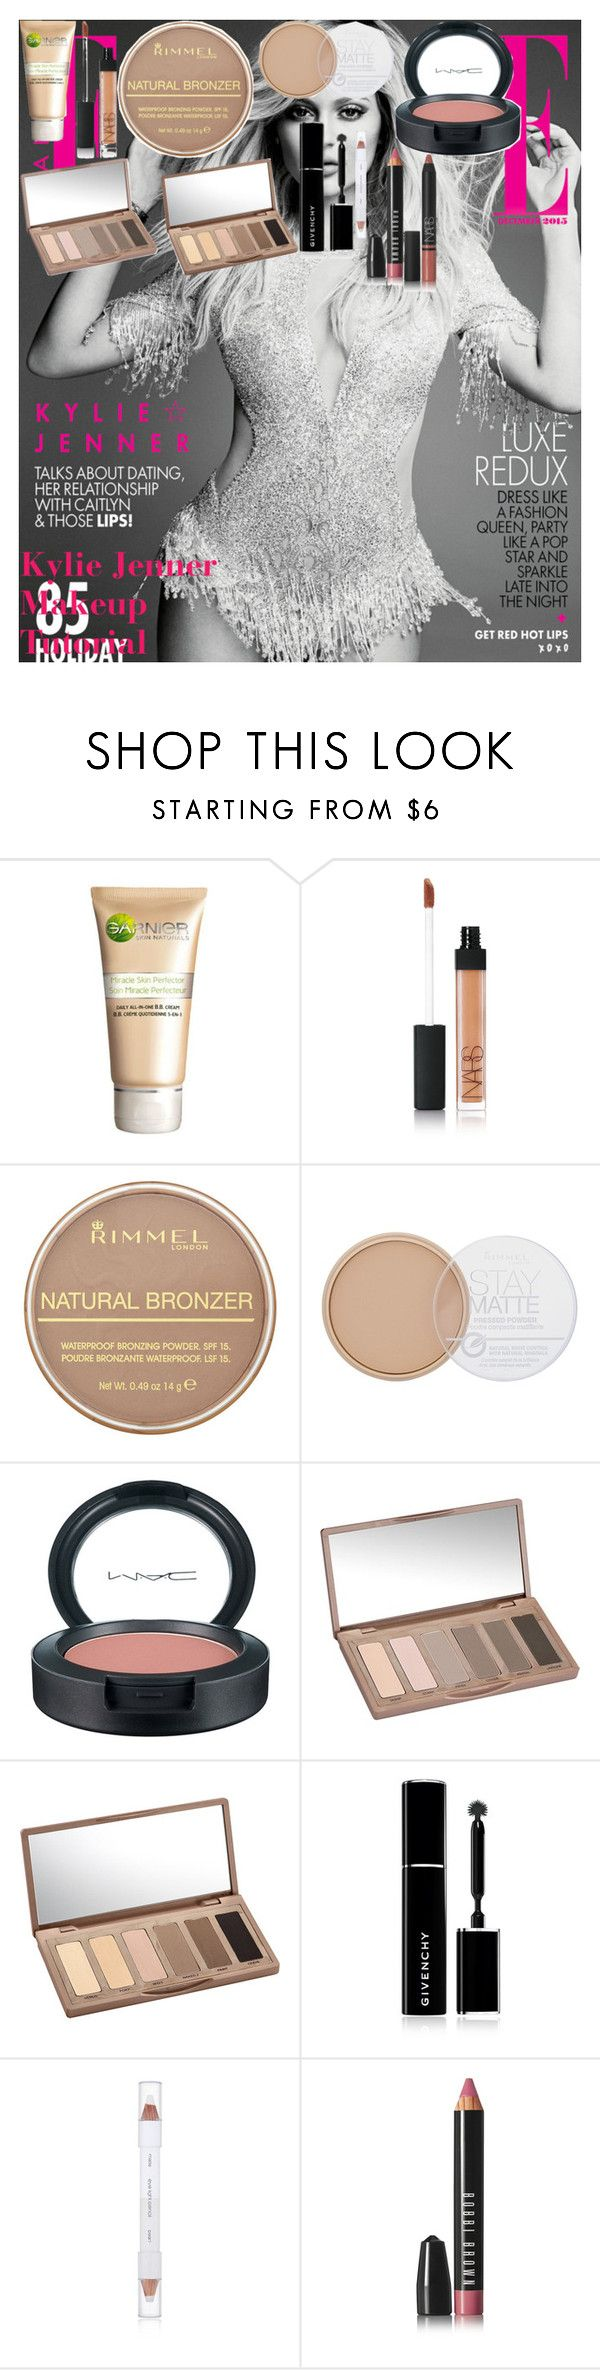 """Kylie Jenner Makeup Tutorial"" by oroartye-1 on Polyvore featuring beauty, Garnier, NARS Cosmetics, Rimmel, MAC Cosmetics, Urban Decay, Givenchy, shu uemura and Bobbi Brown Cosmetics"